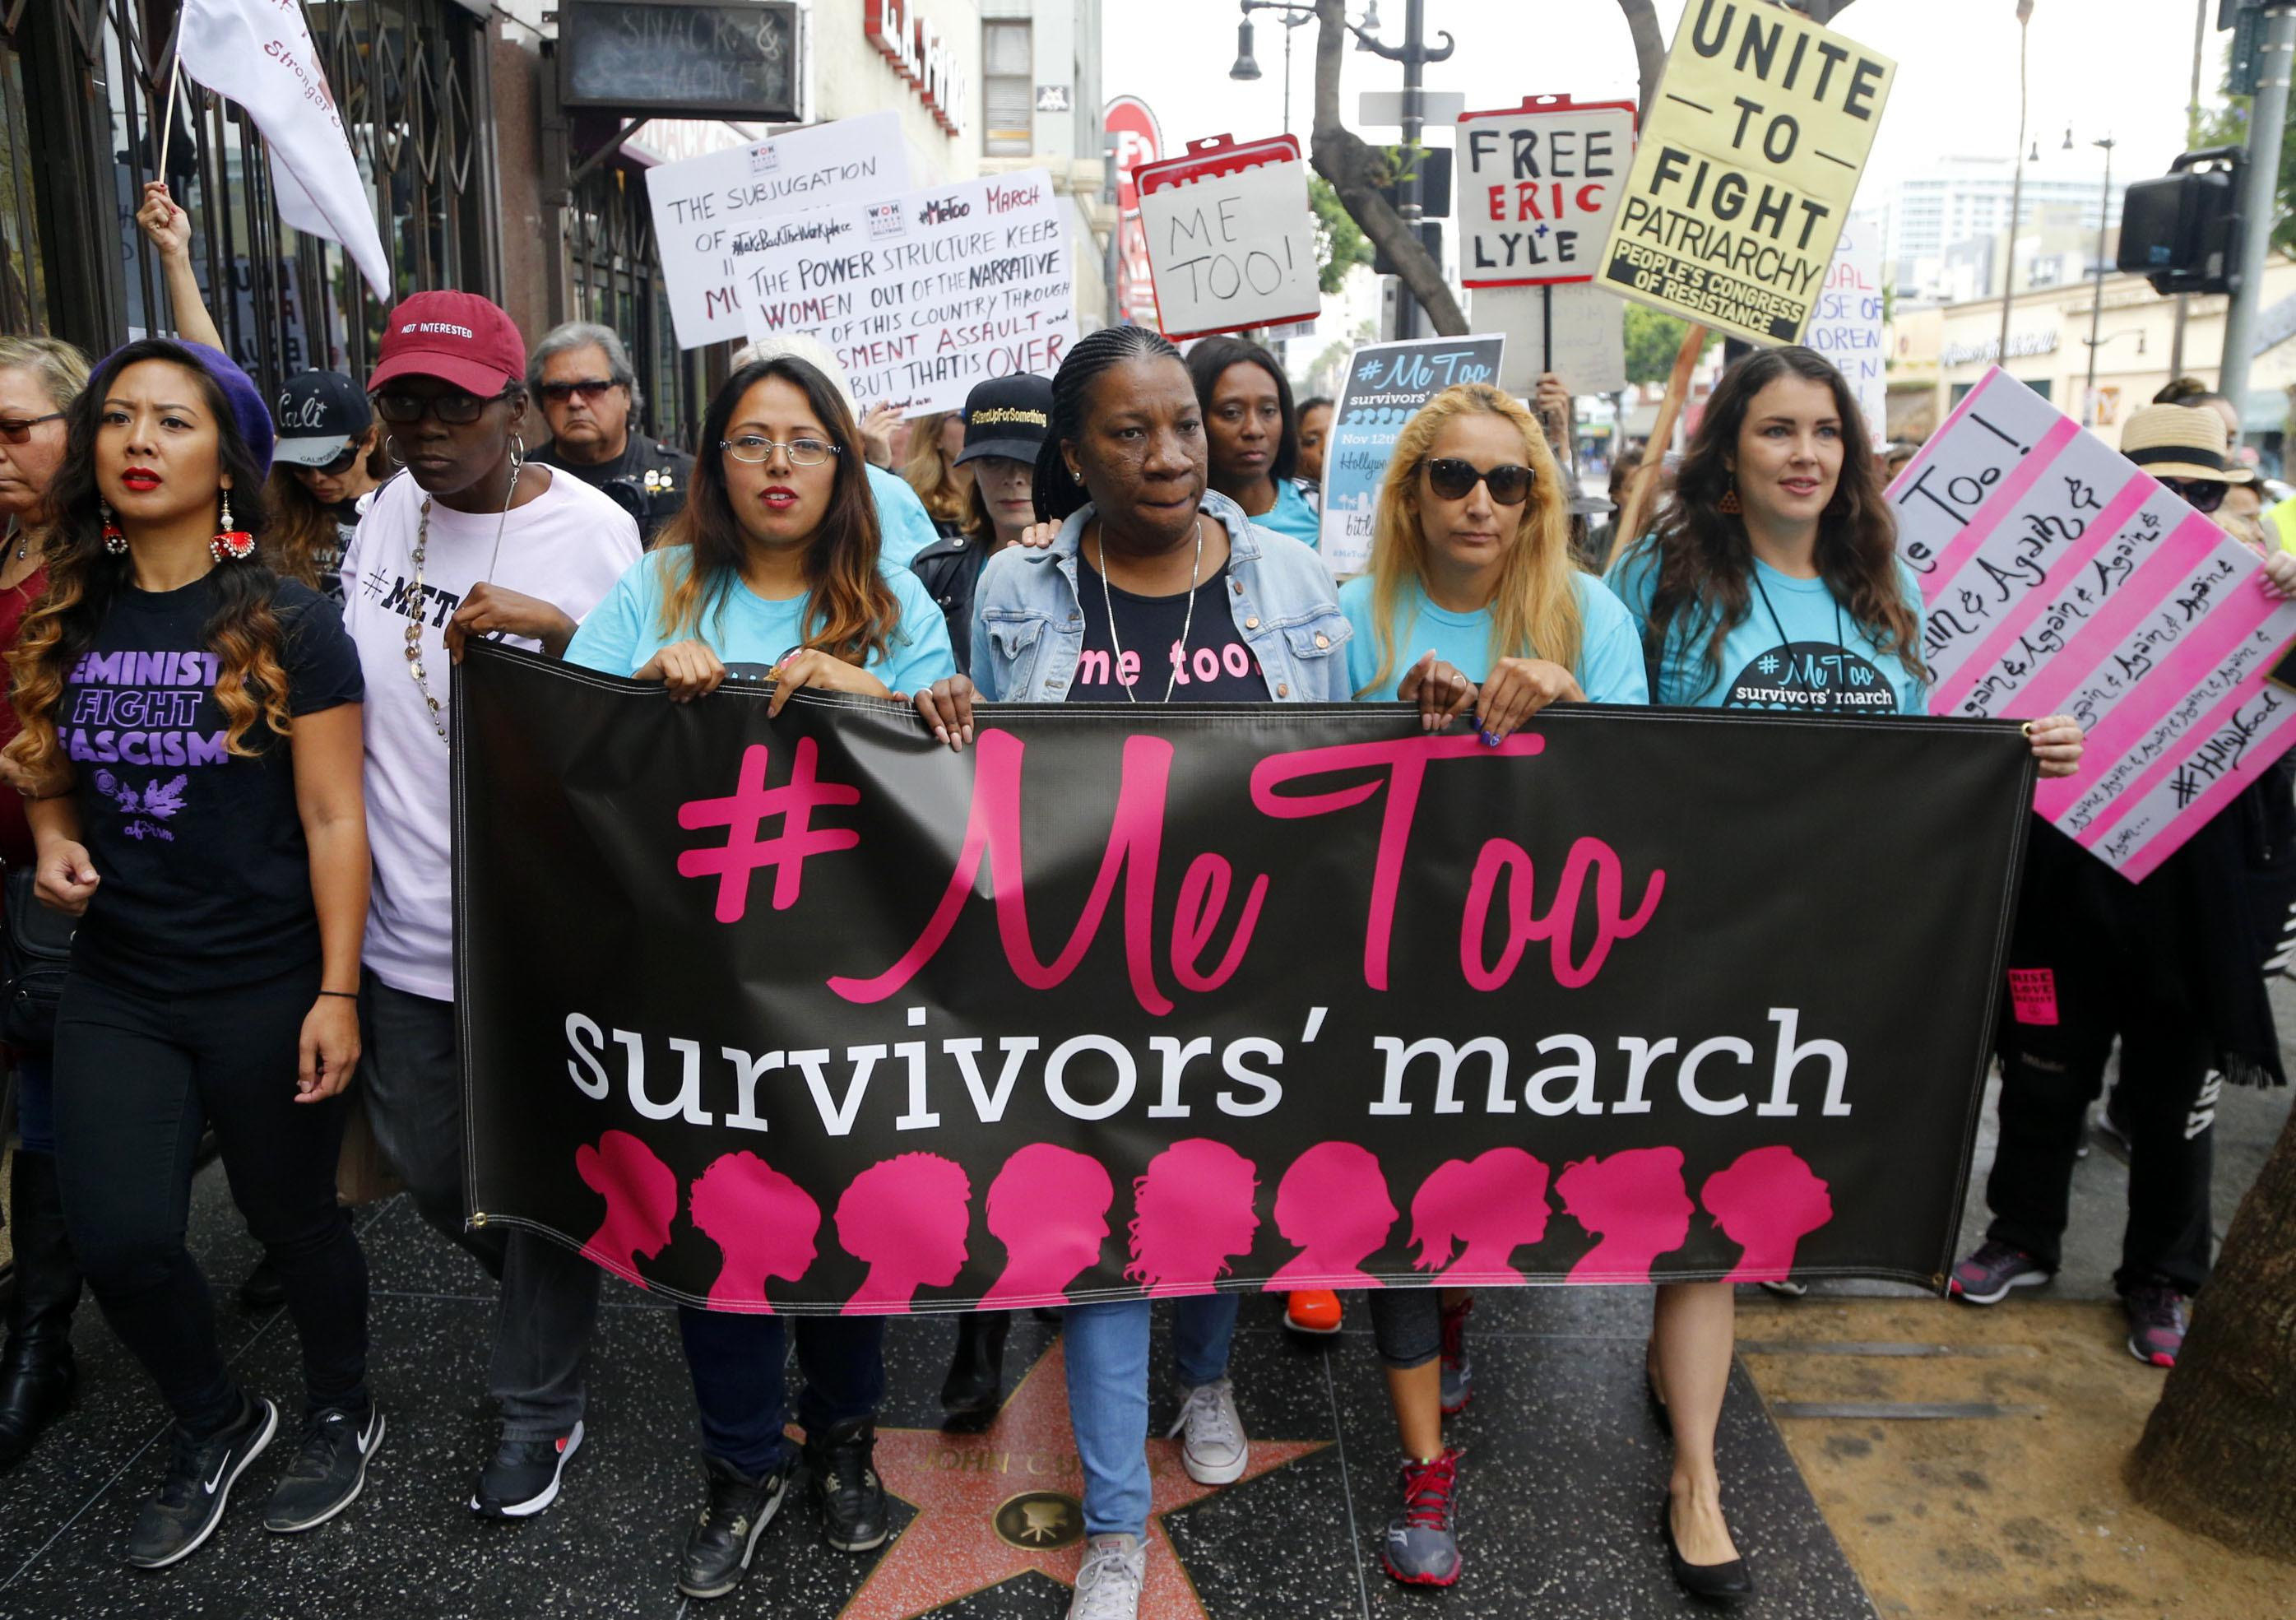 Global warming actions taken against sexual harassment